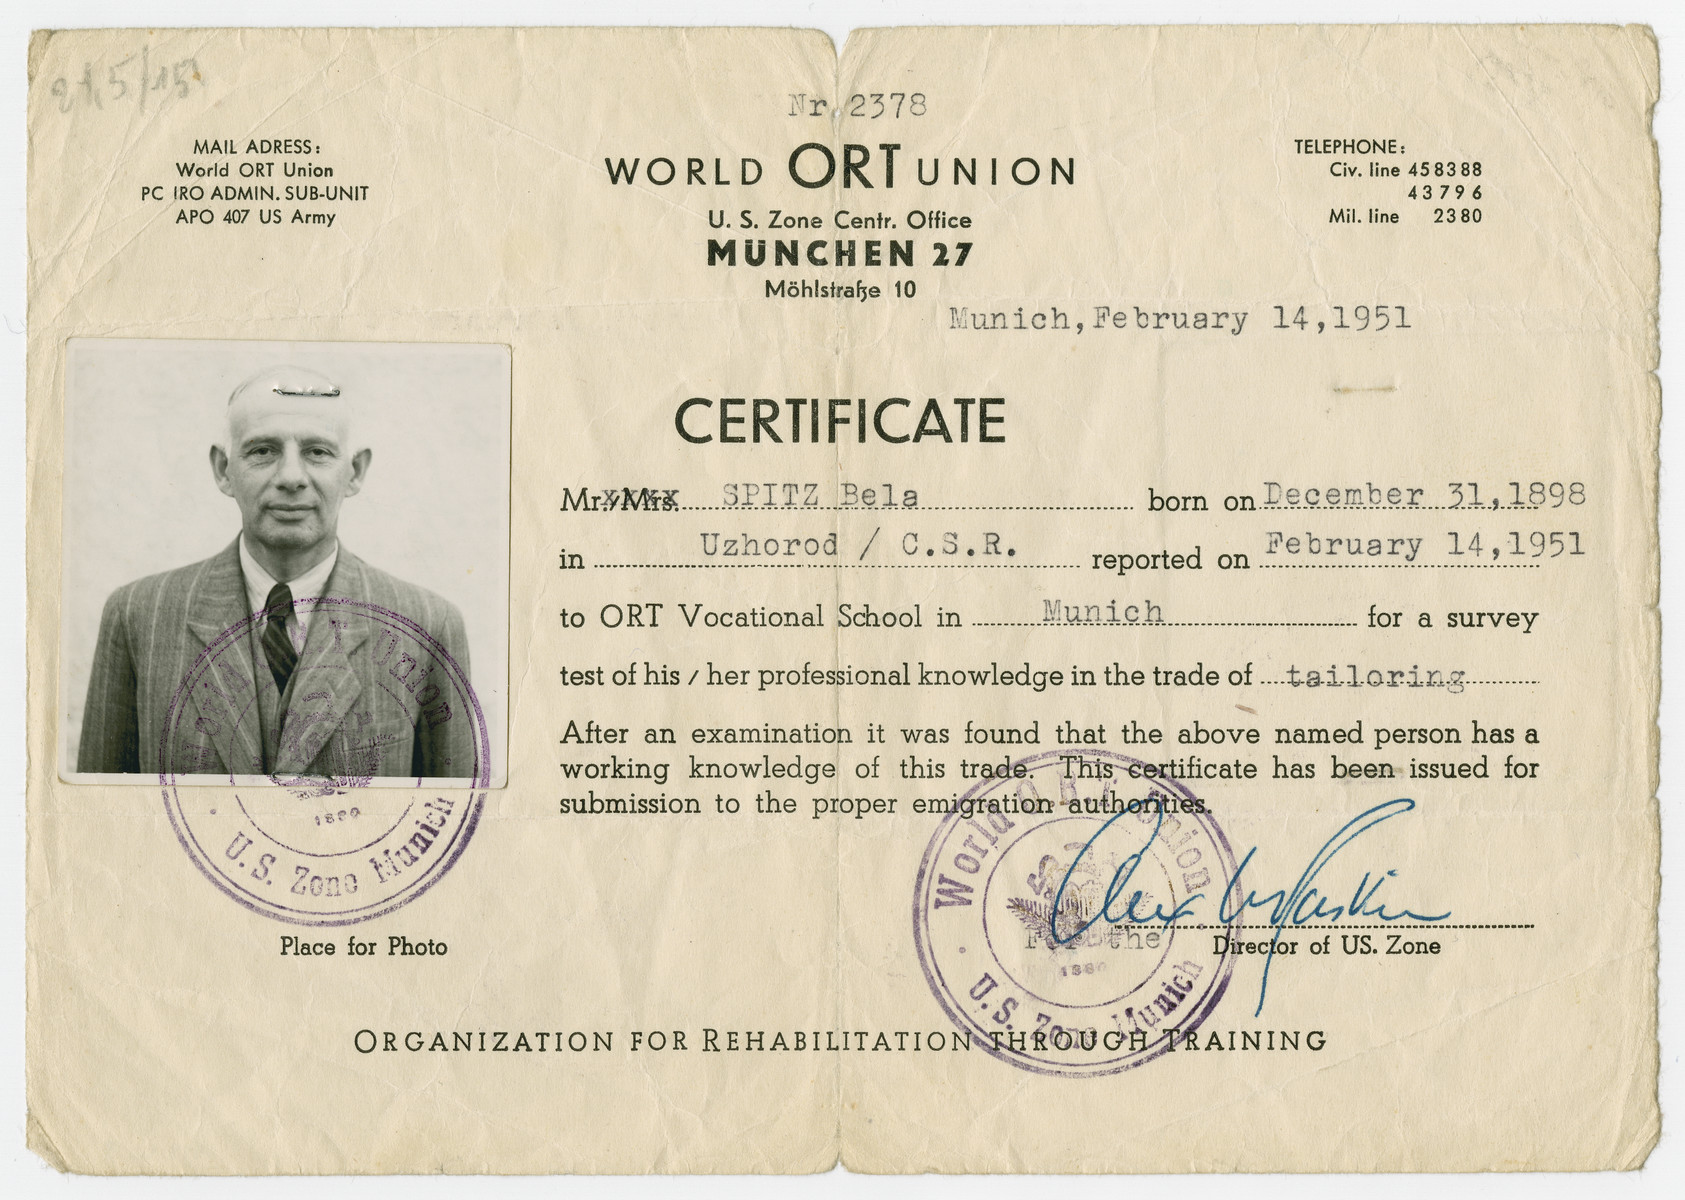 ORT vocational certificate issued to Bela Spitz attesting to the fact that he is a trained tailor.